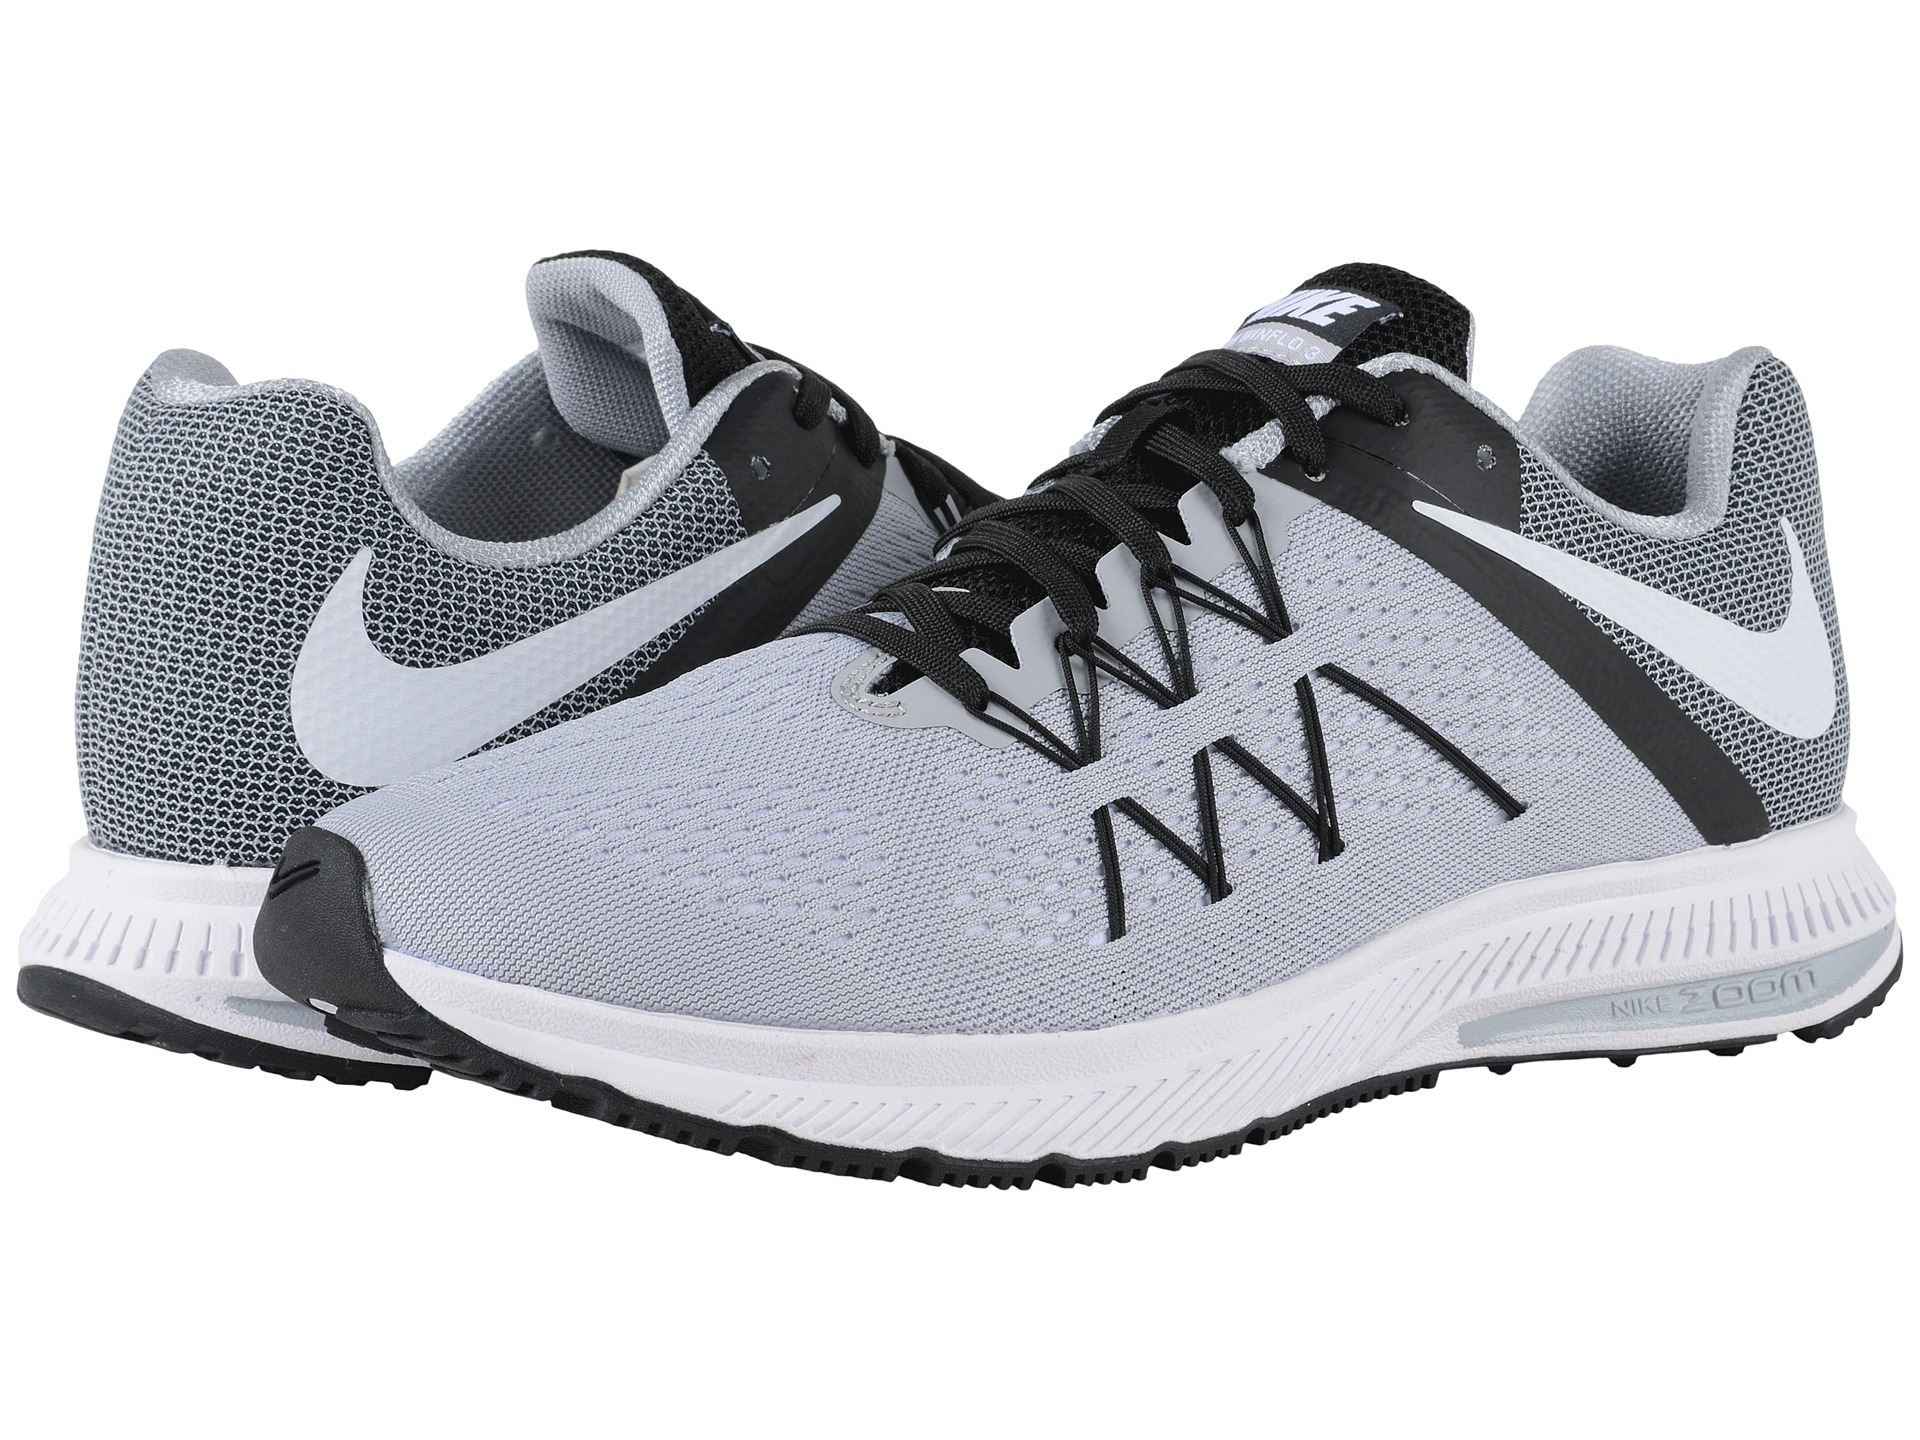 finest selection 275f6 a449a best price lyst nike zoom winflo 3 in gray for men d7228 d05d2